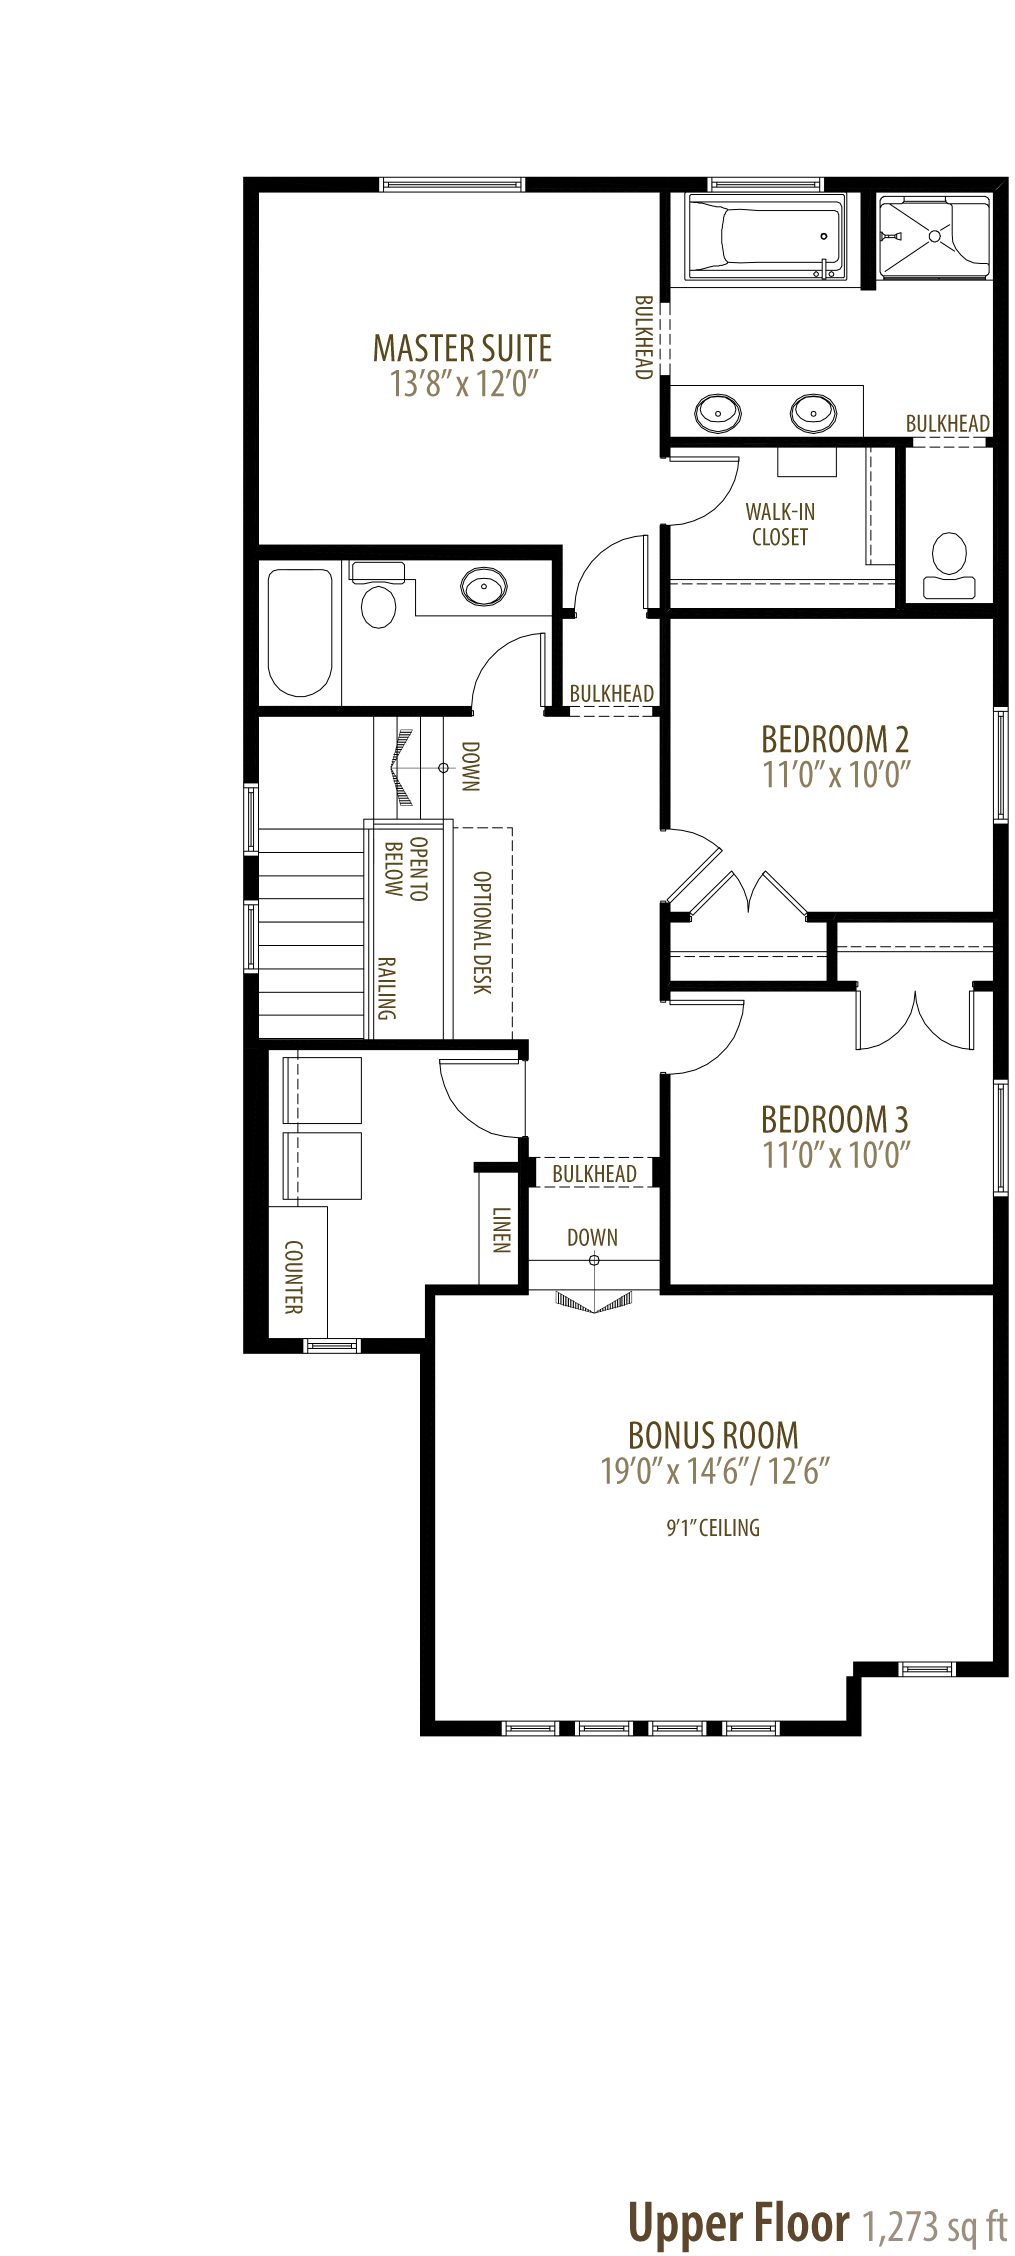 1258 Peregrine Terrace NW Floorplan